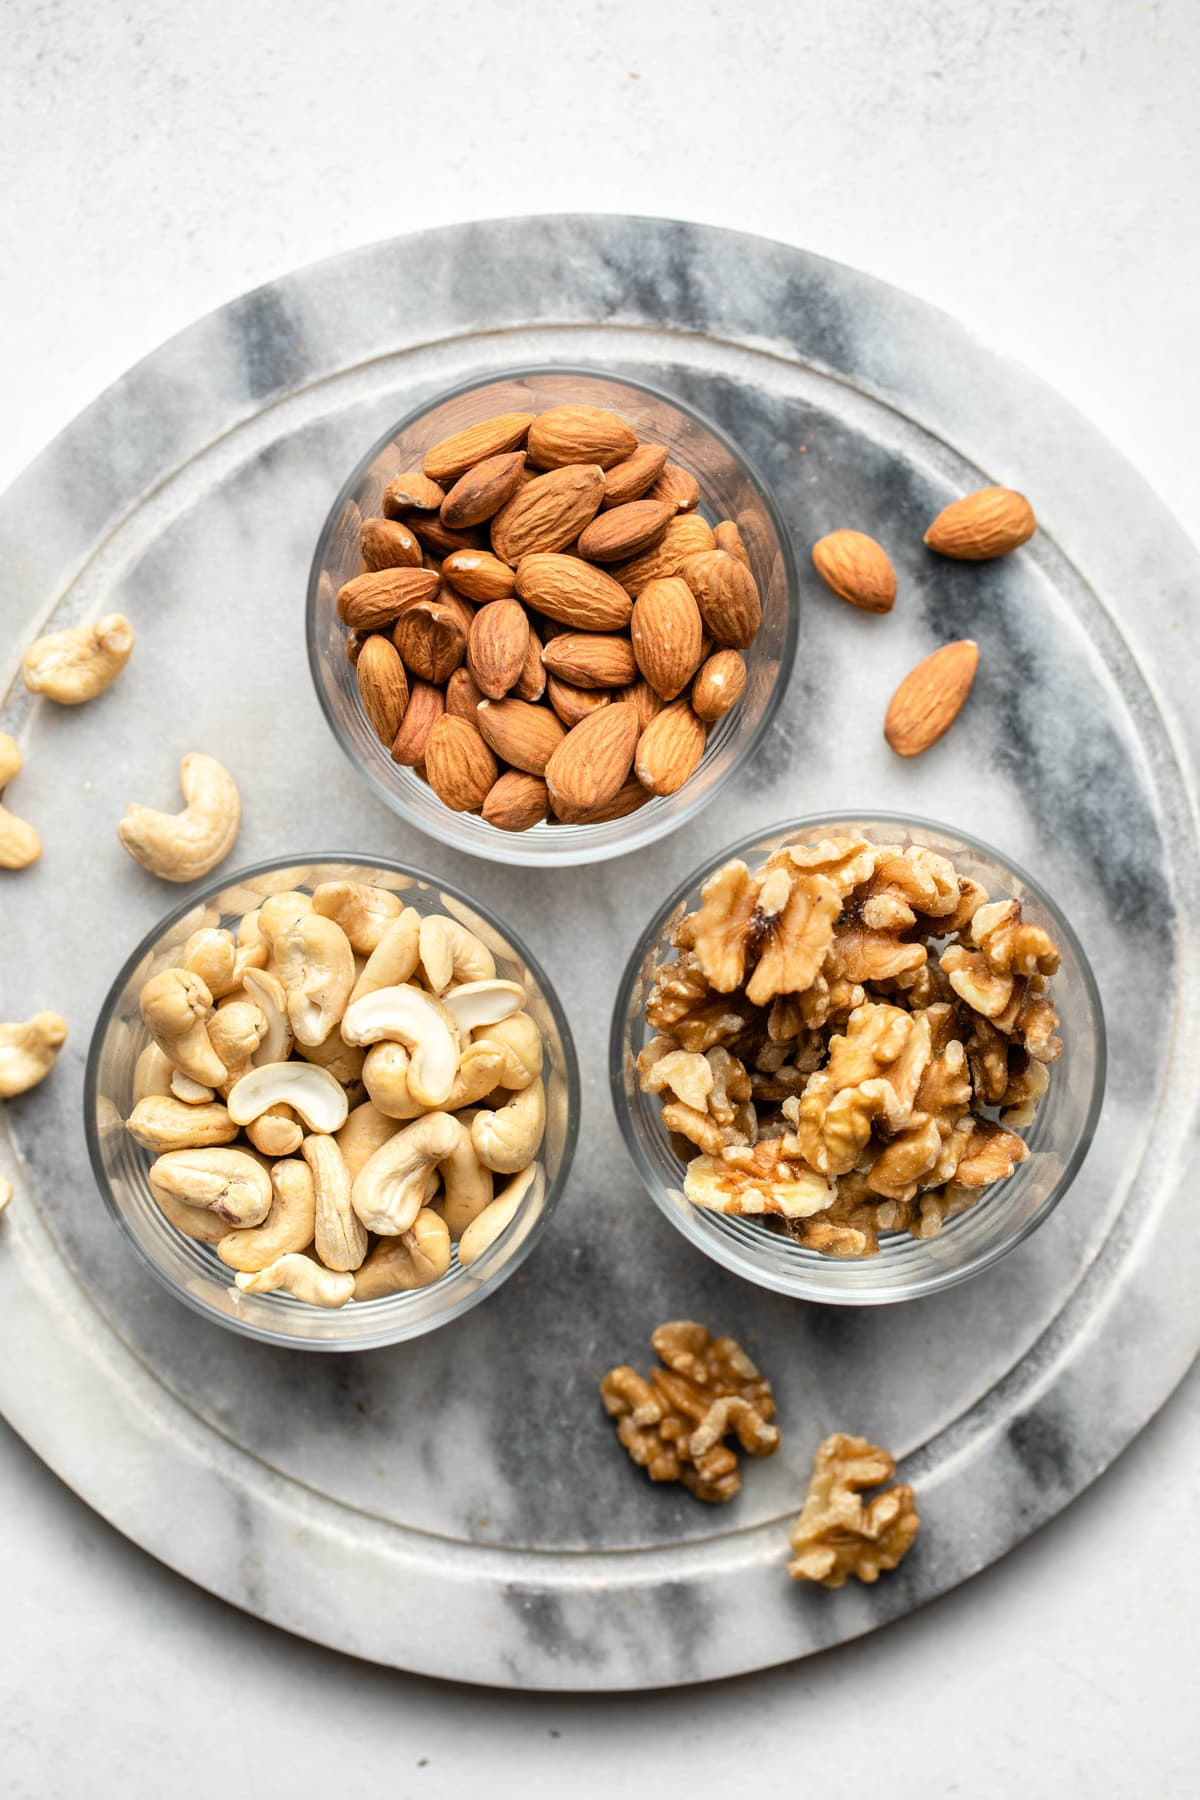 glass bowls of almonds, walnuts, and cashews